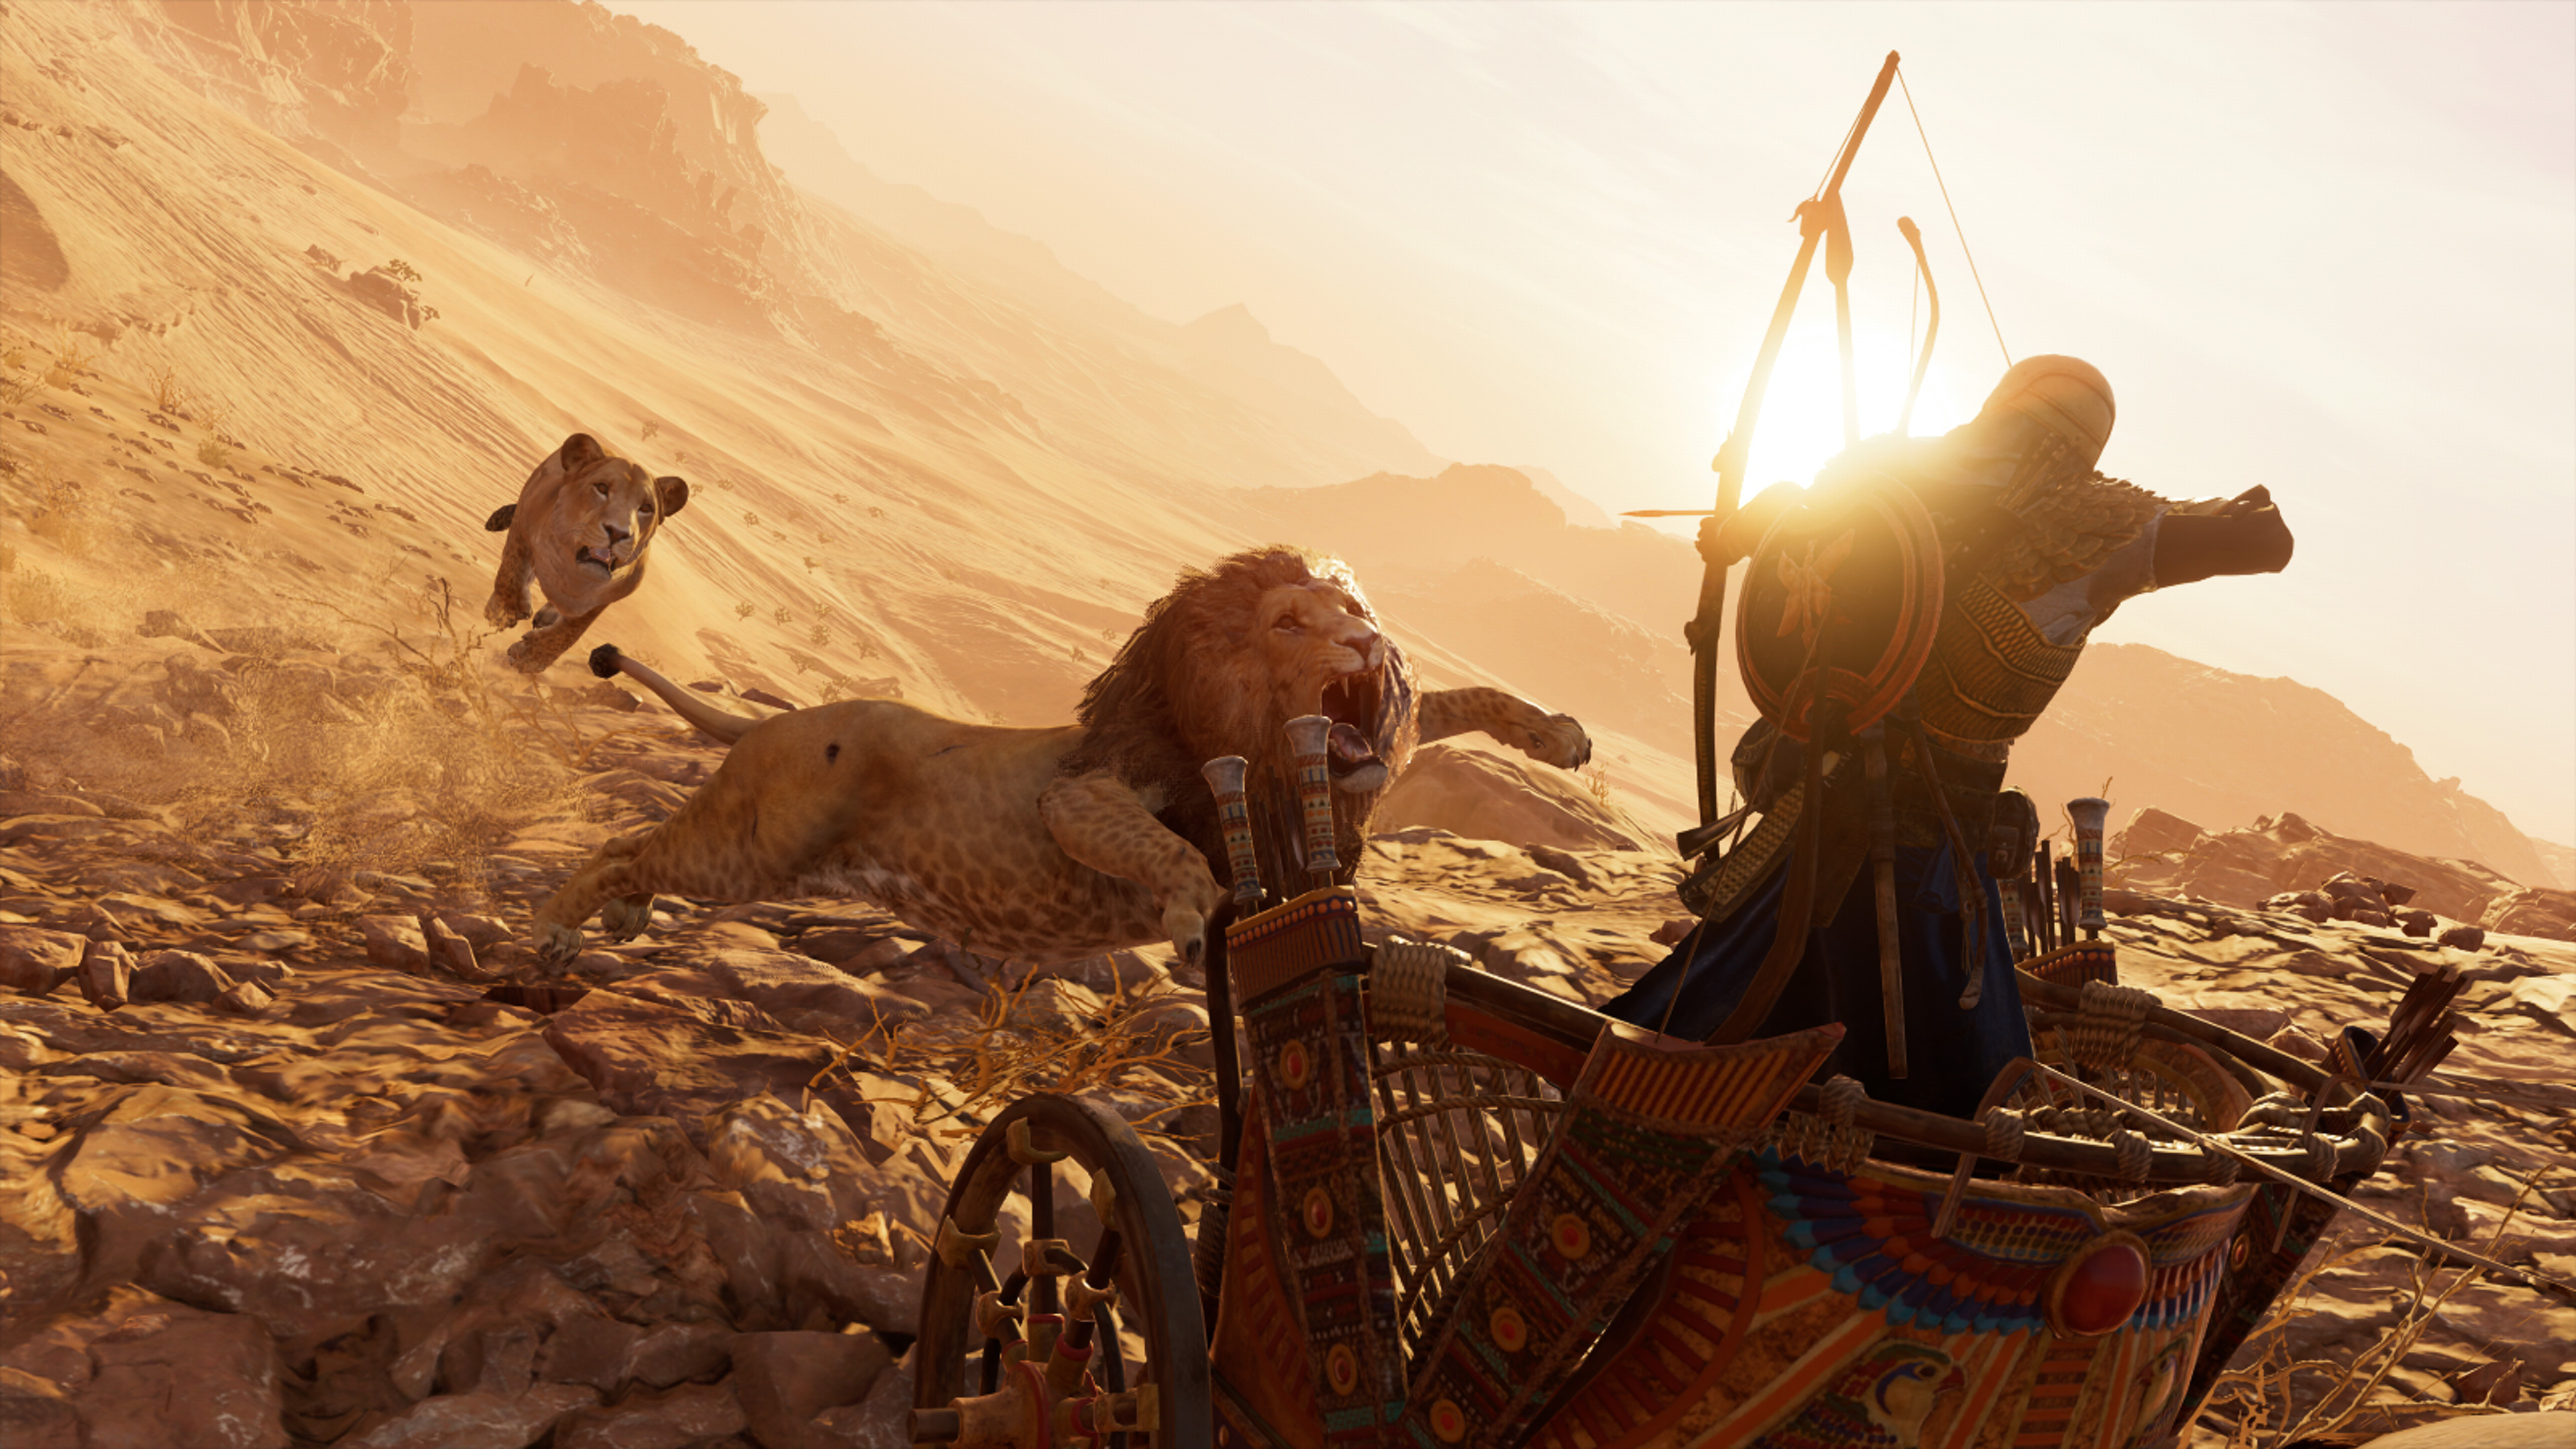 3840x2160 Lions Assassins Creed Origins 4k 4k Hd 4k Wallpapers